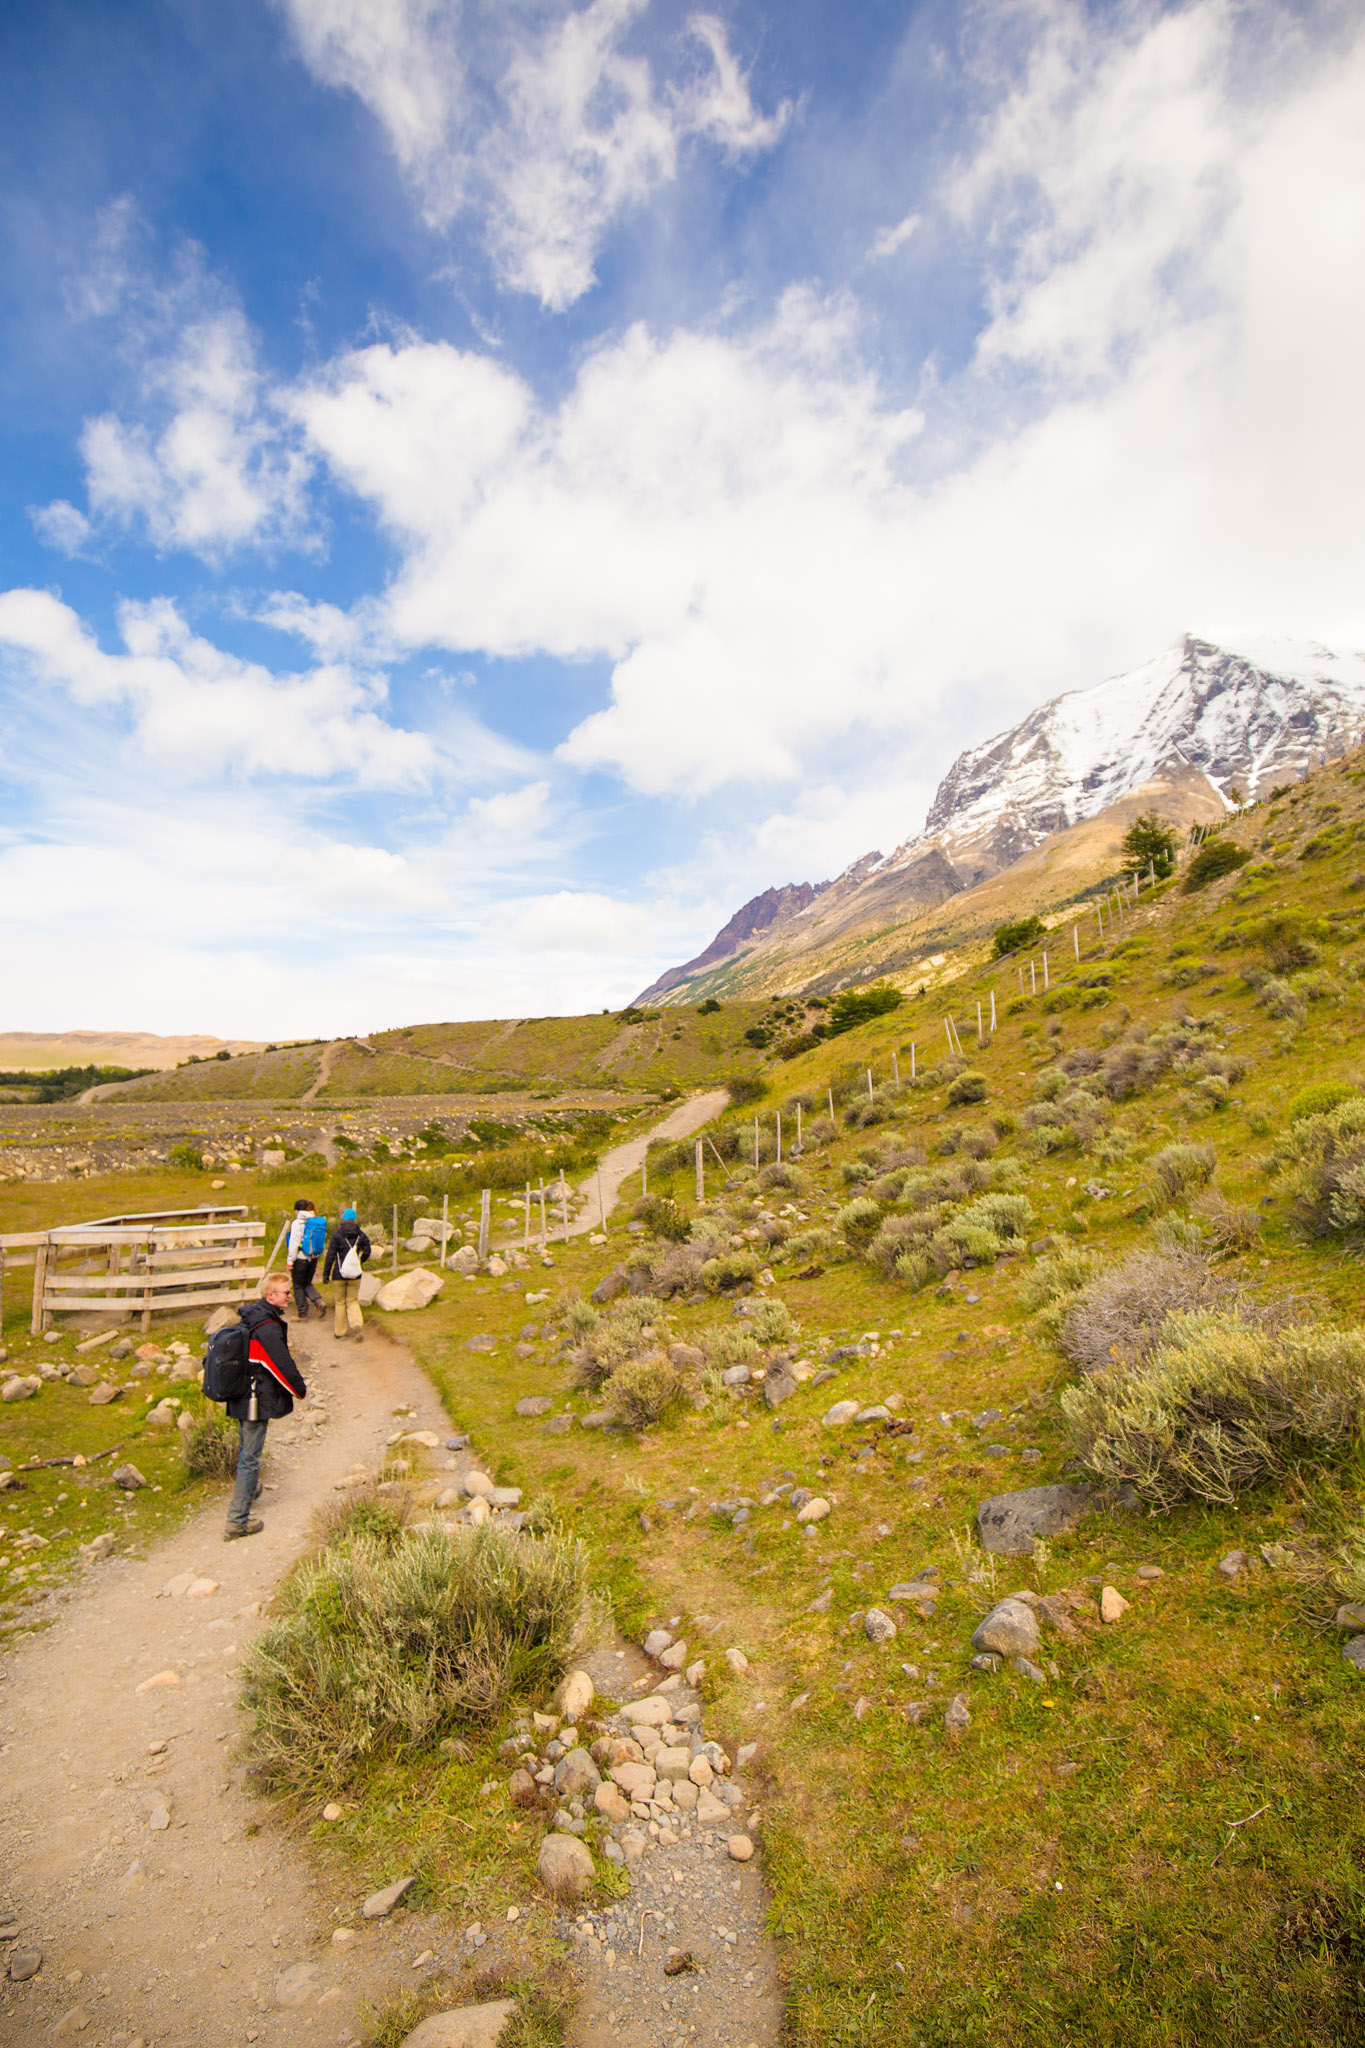 Wedding-Travellers-Overlanding-Destination-Wedding-Chile-Torres-del-Paine-hike-trail-path